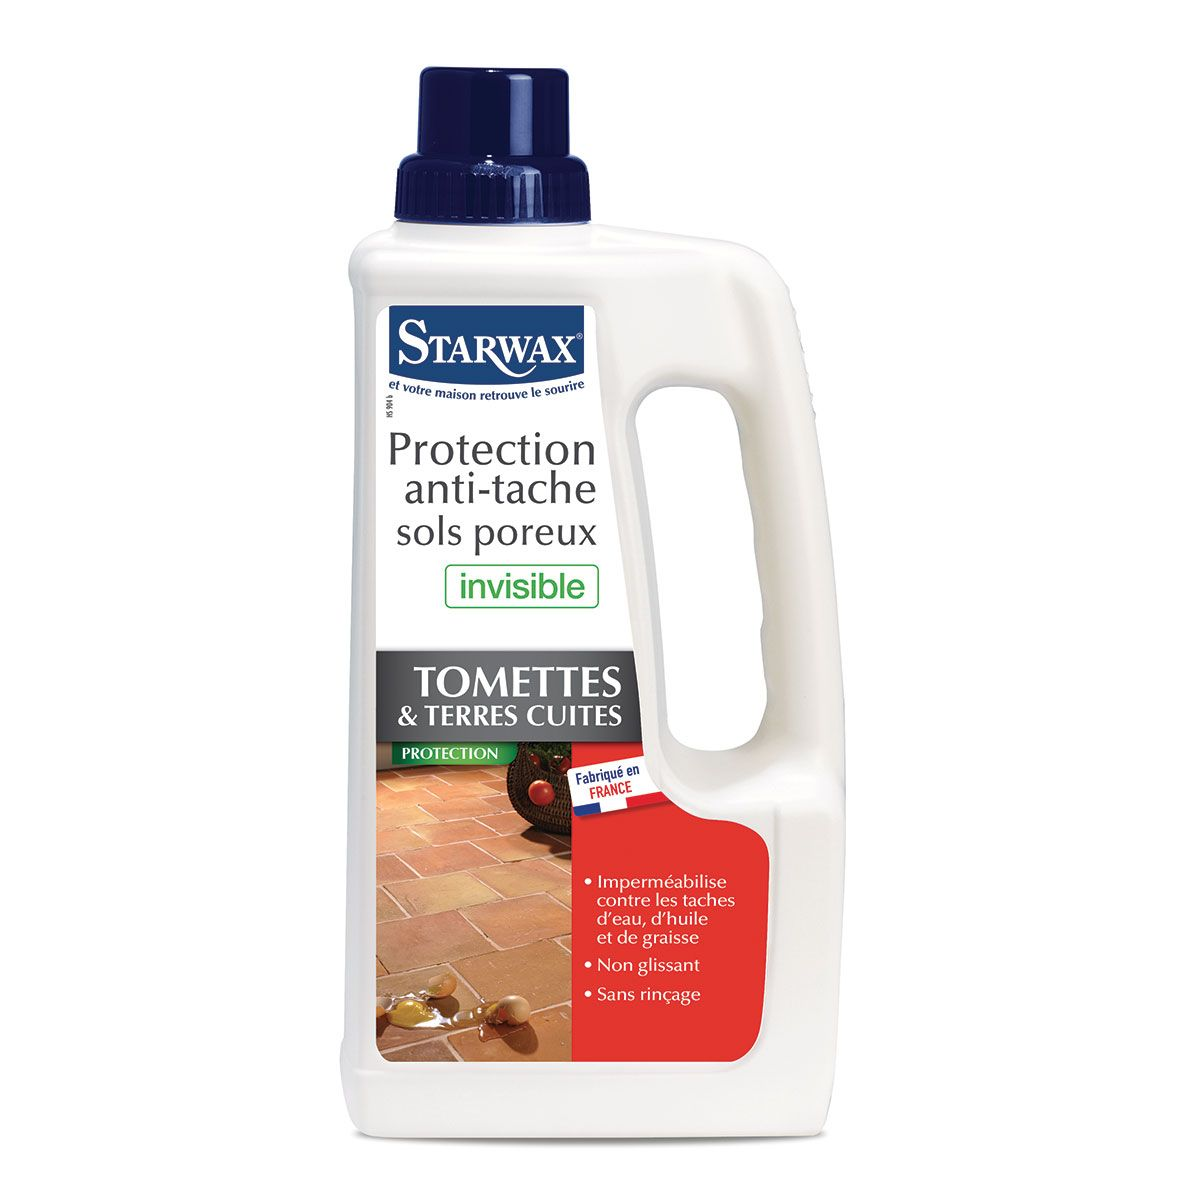 protection anti-taches tomettes terres cuites starwax